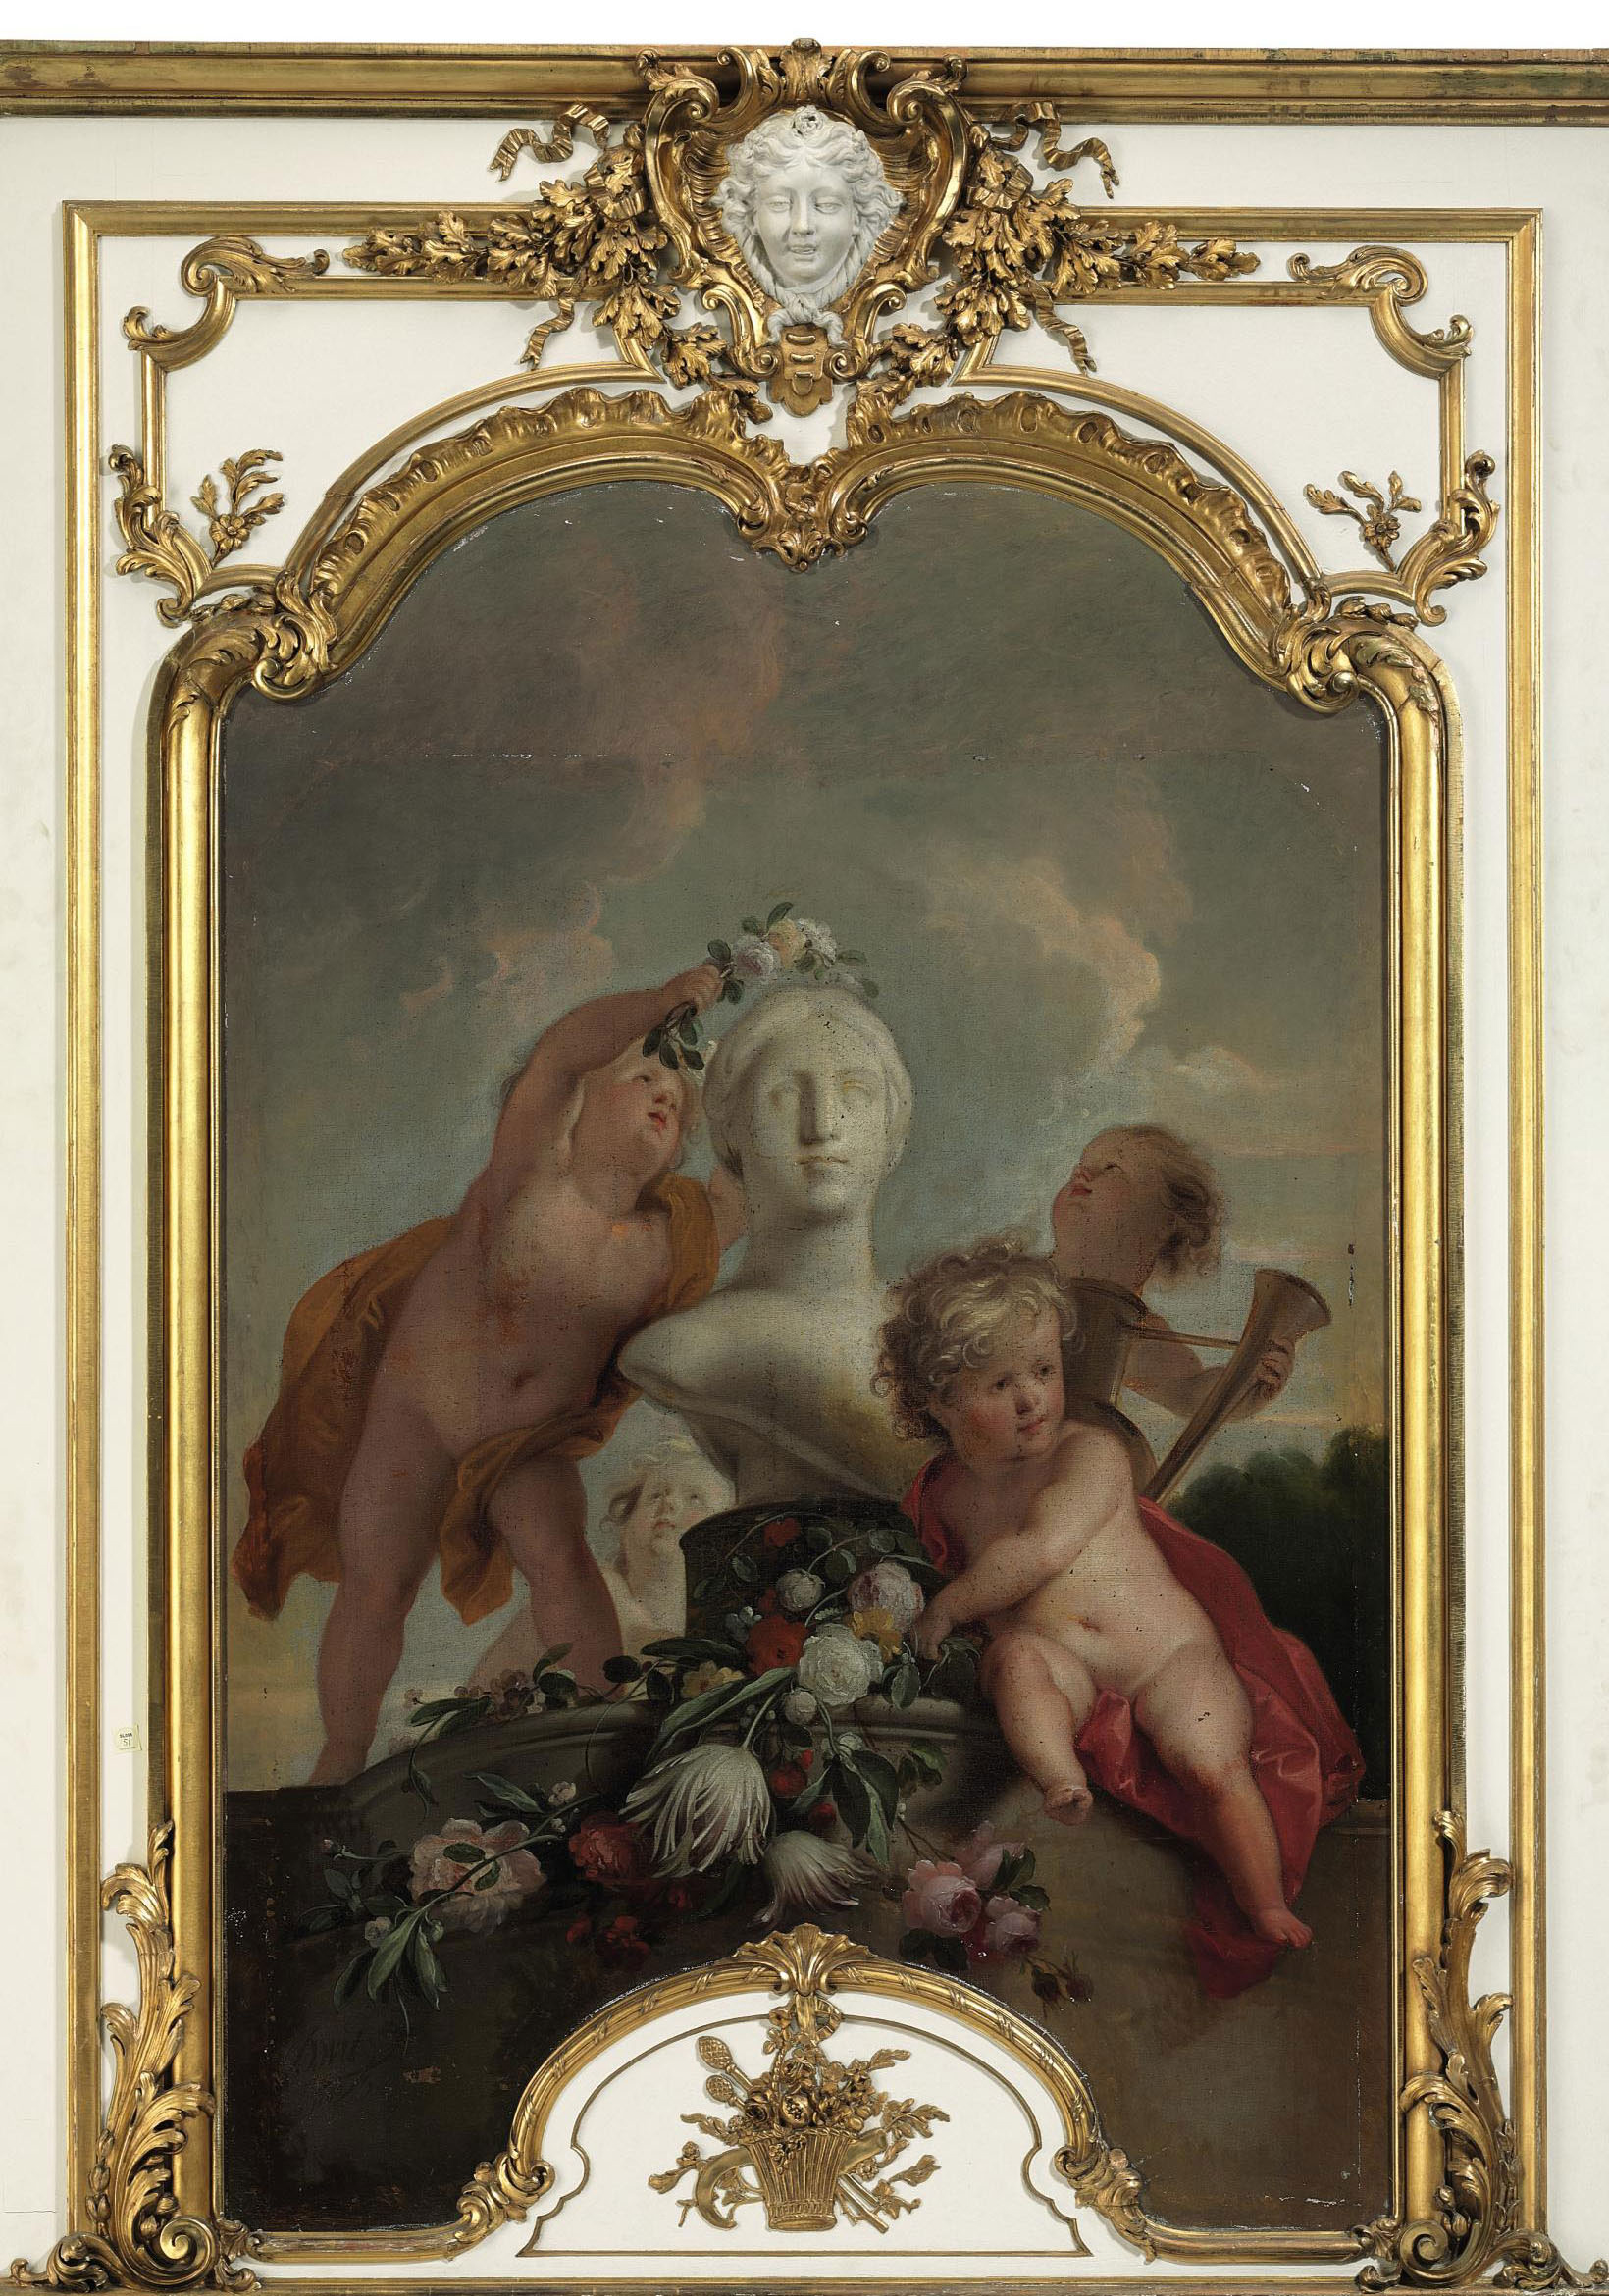 Putti decorating a sculpture with flower garlands